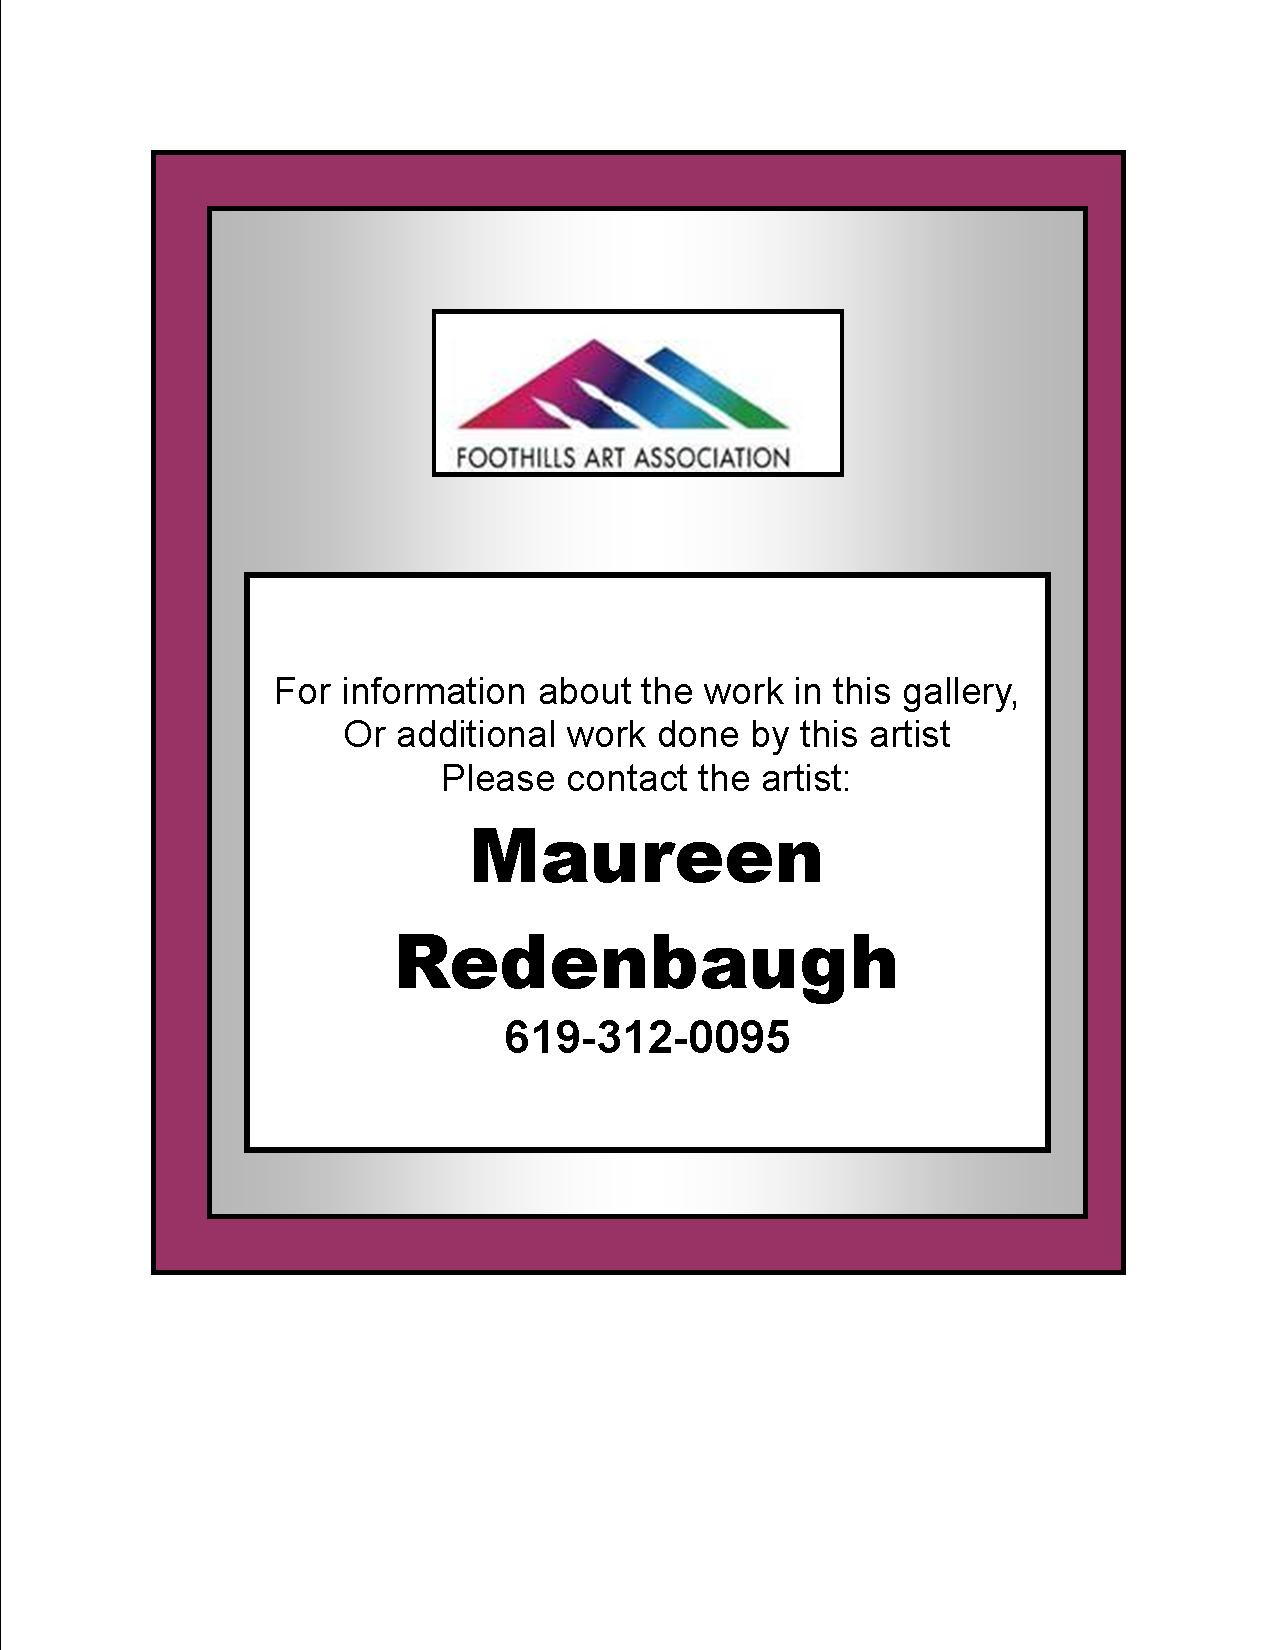 Maureen Redenbaugh